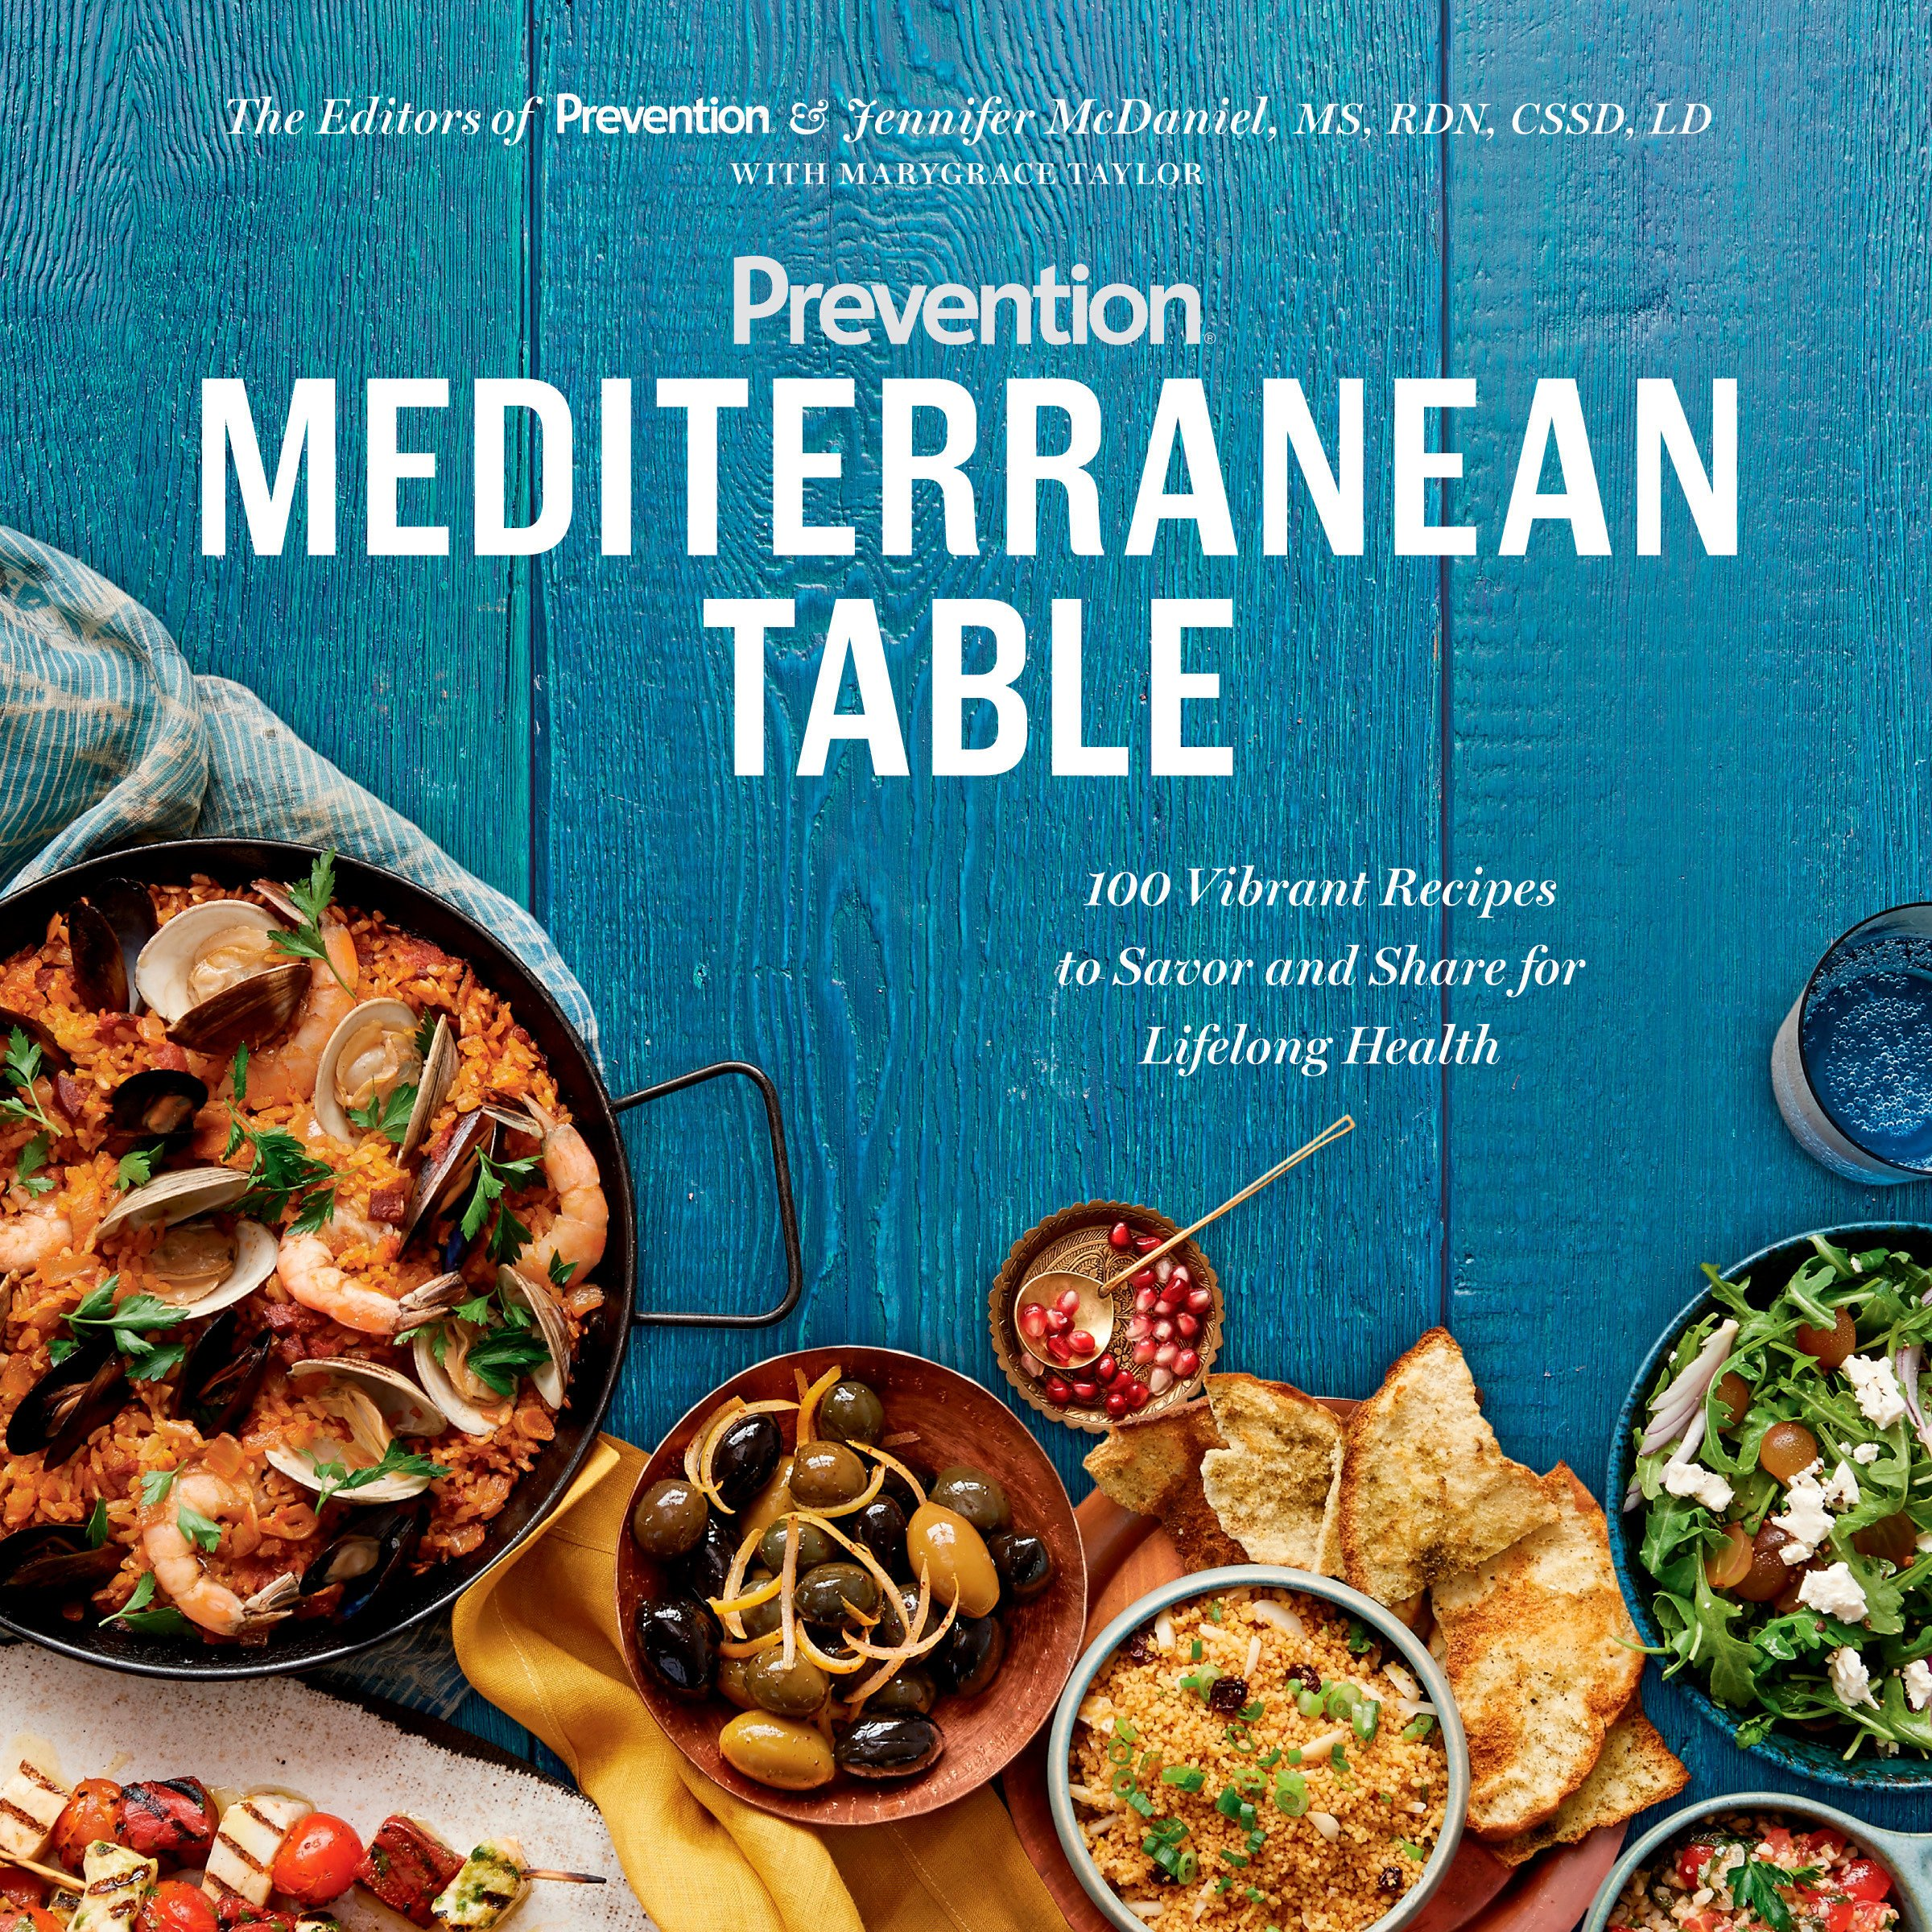 Beau Prevention Mediterranean Table: 100 Vibrant Recipes To Savor And Share For  Lifelong Health: Prevention Editors, Jennifer Mcdaniel, Marygrace Taylor:  ...